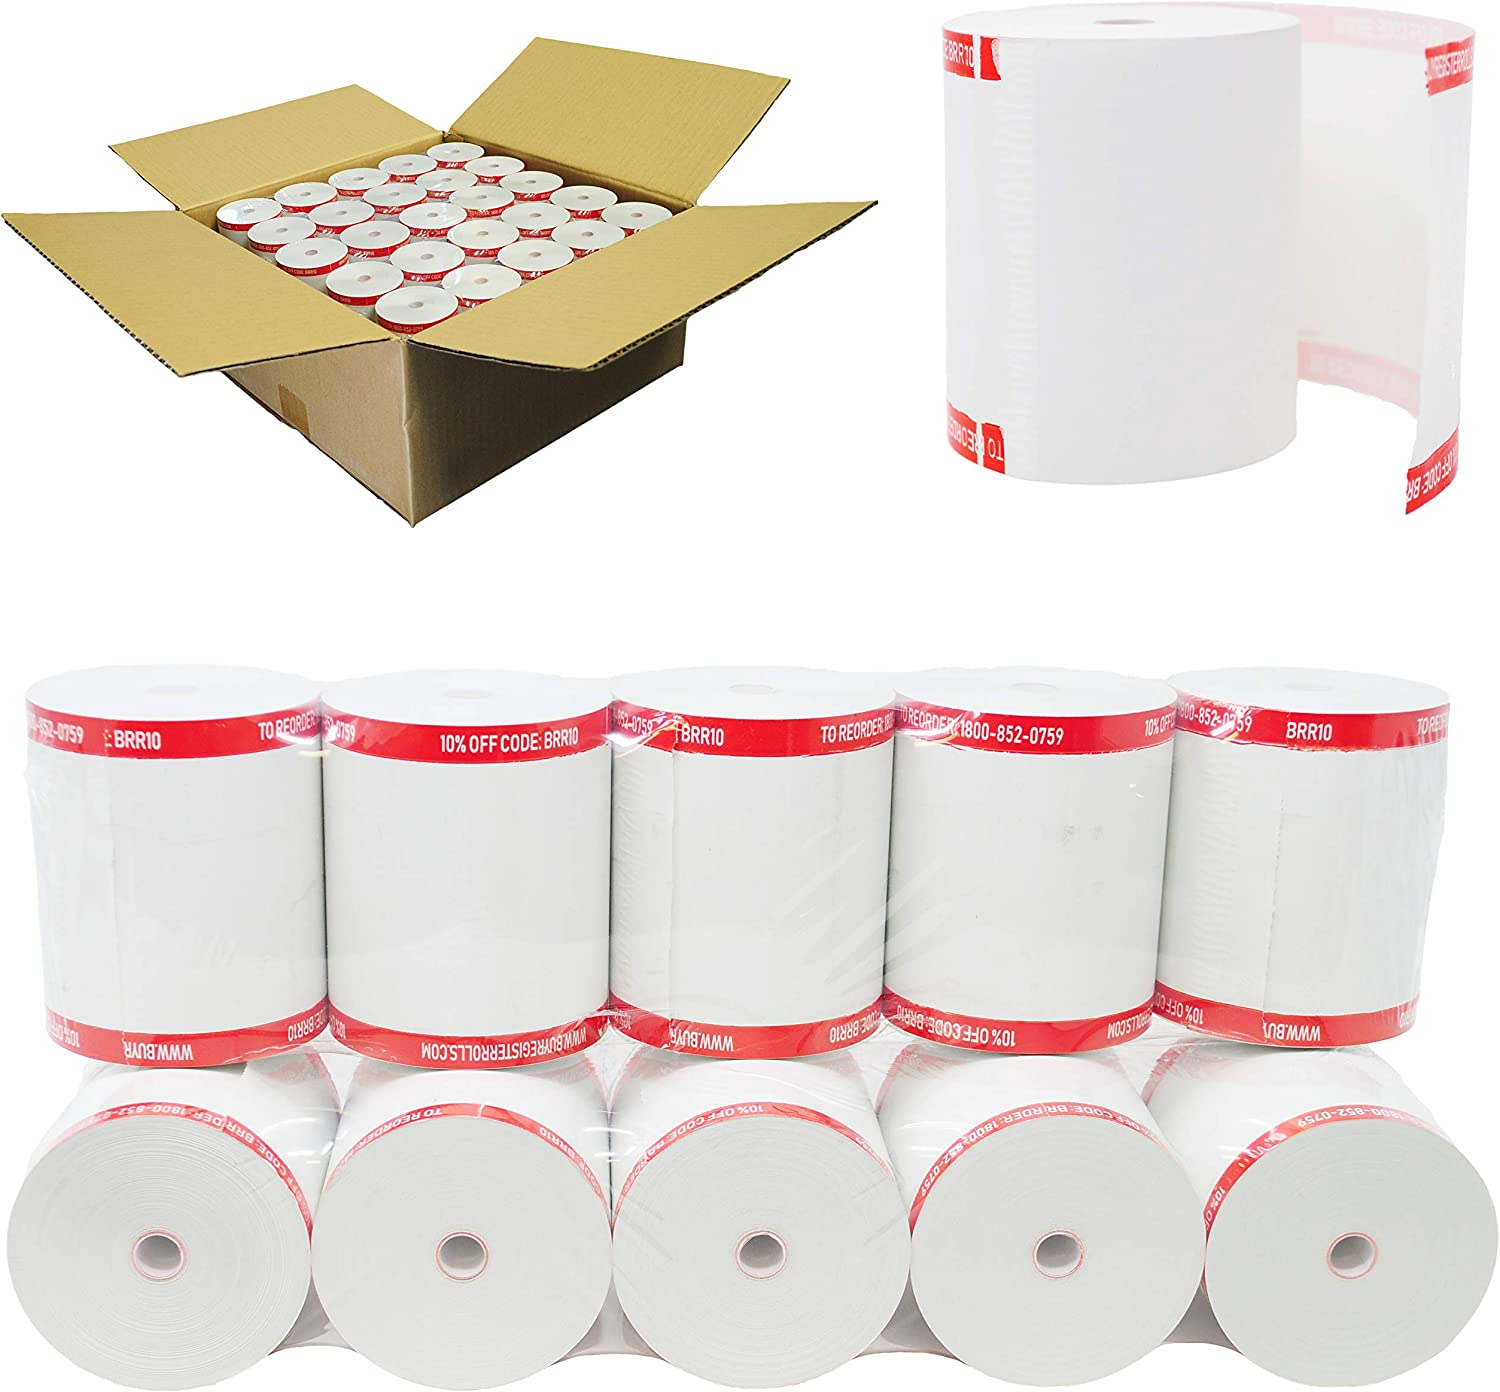 NCR 856348 Thermal Receipt Paper 3-1 White Popularity Rolls Sales 8